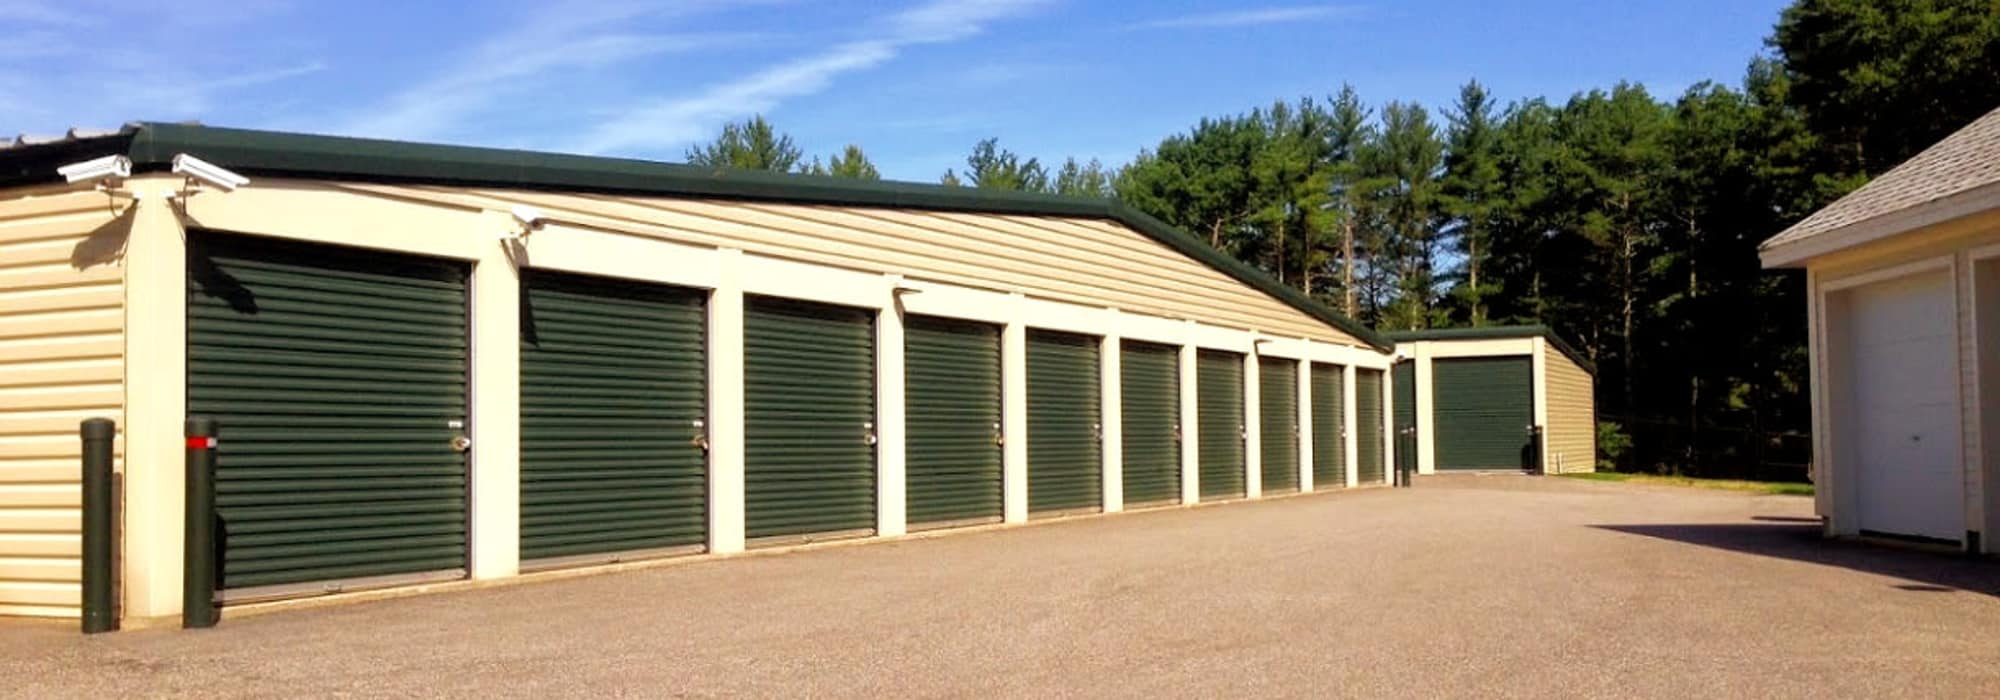 Prime Storage in Cape Neddick, ME